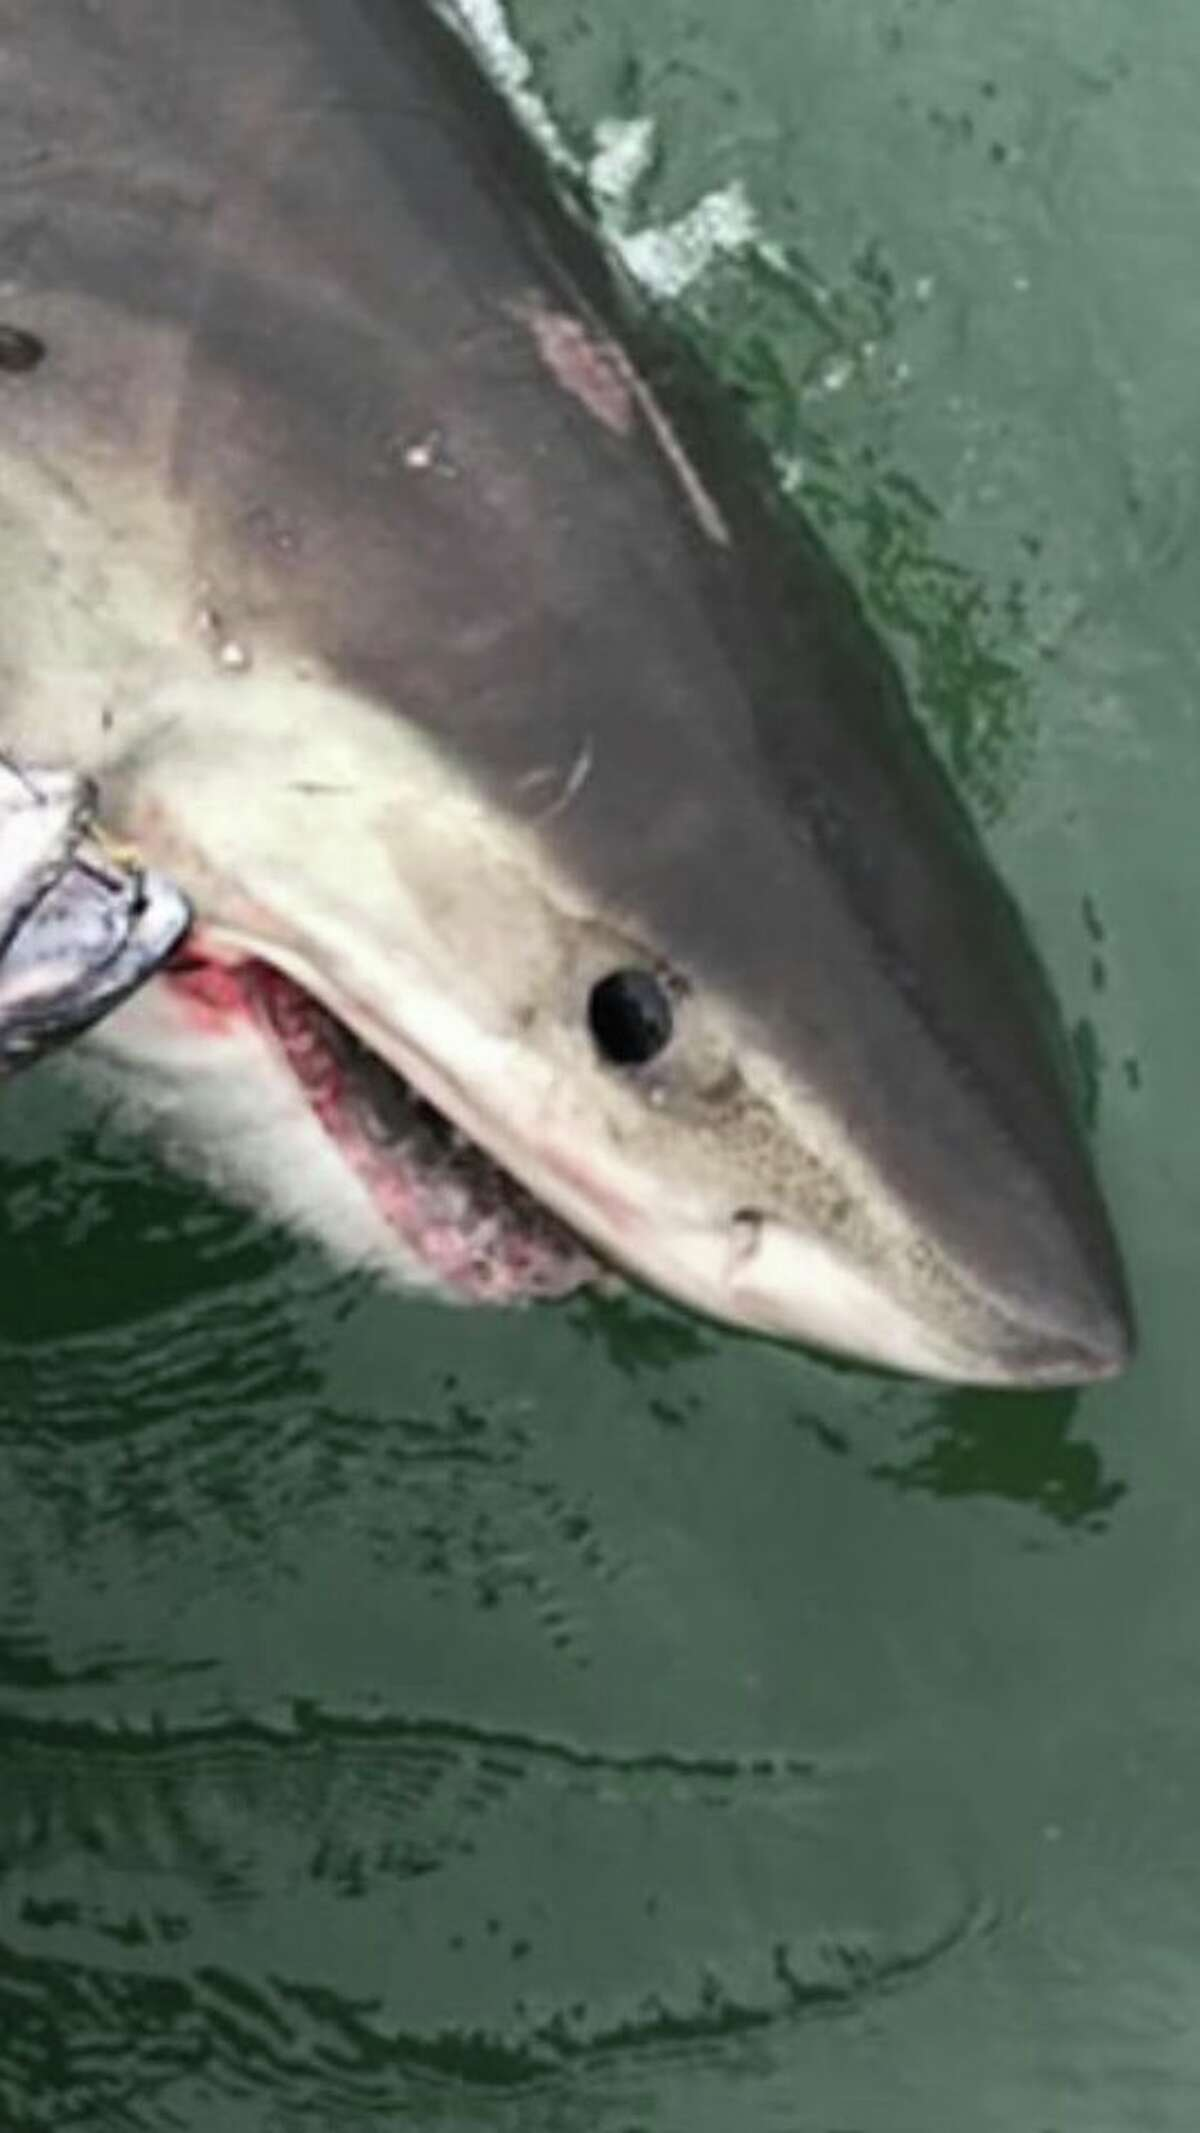 Gamez estimates the shark was somewhere between eight-and-a-half and ten feet long.